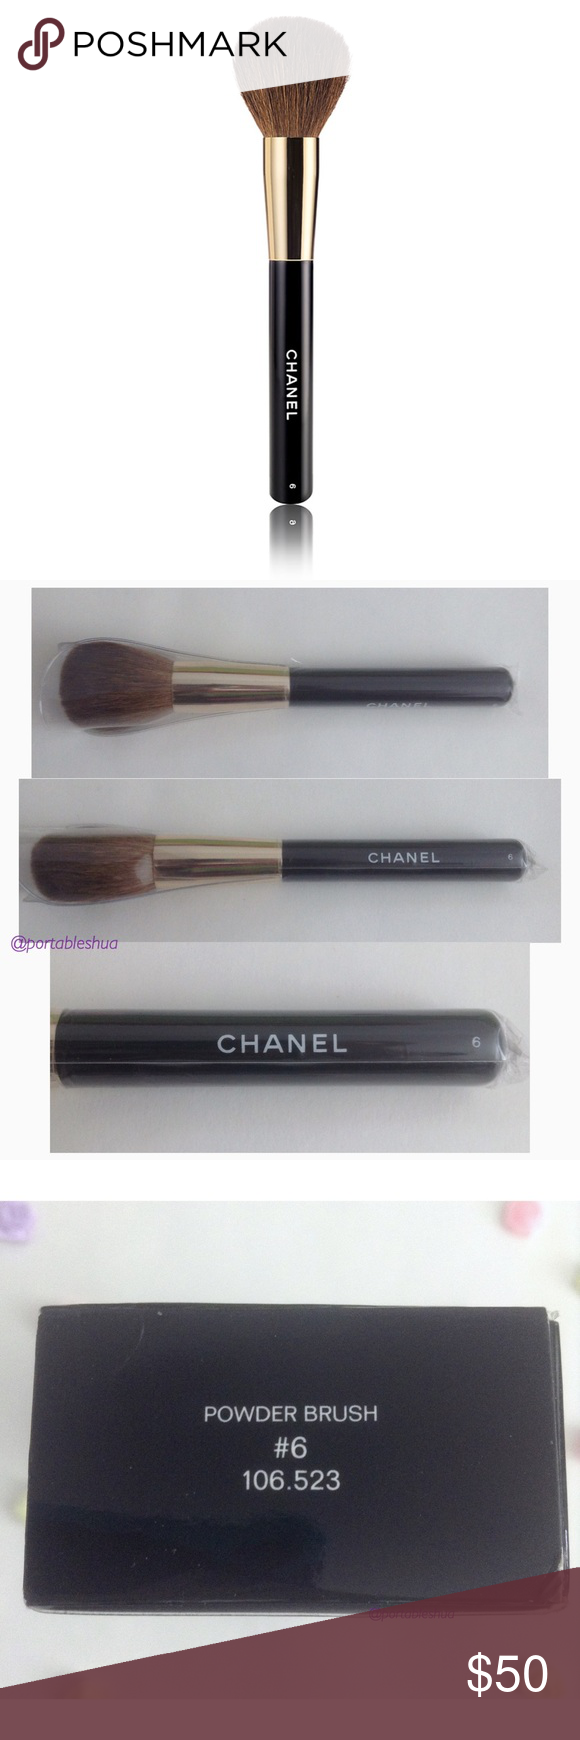 55fd2bebb0 HP! NWT - Chanel Le Pinceau Poudre Powder Brush #6 ! HOST PICK FOR ...